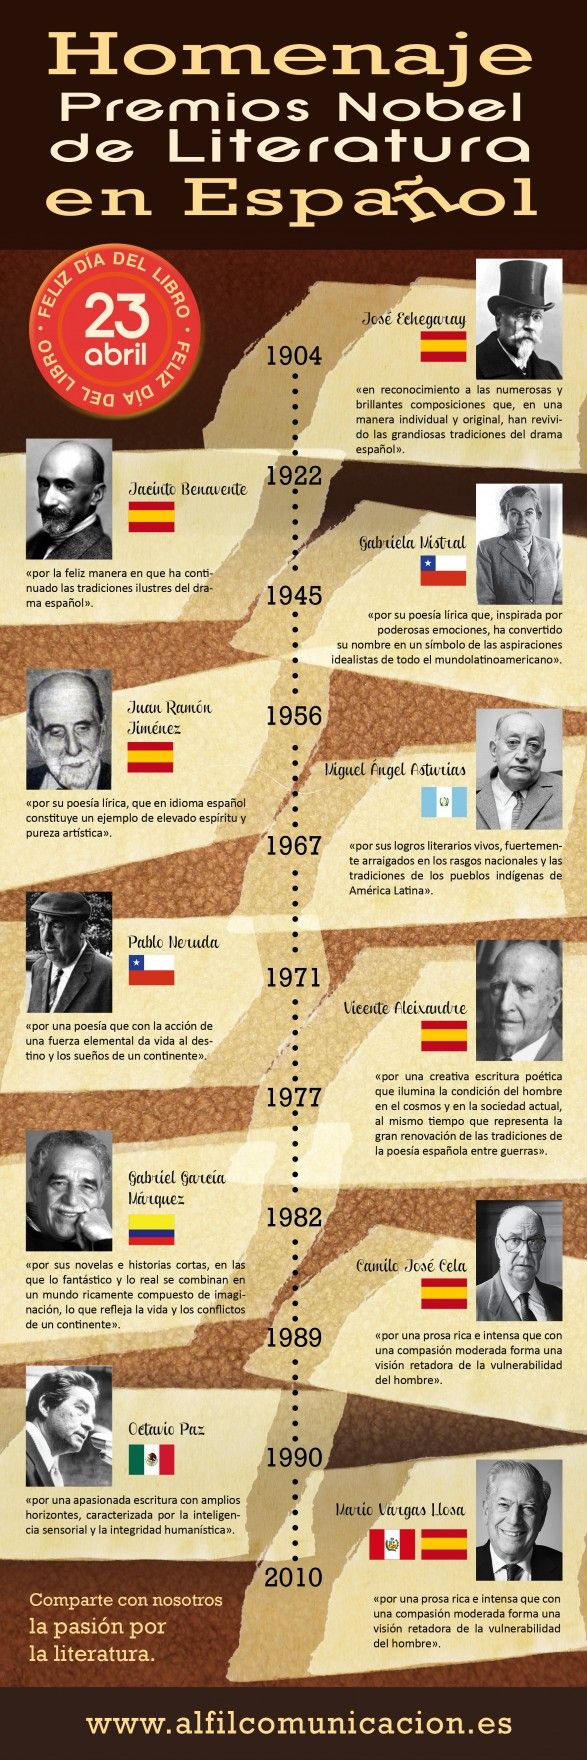 Spanish Literature Nobel Prizes